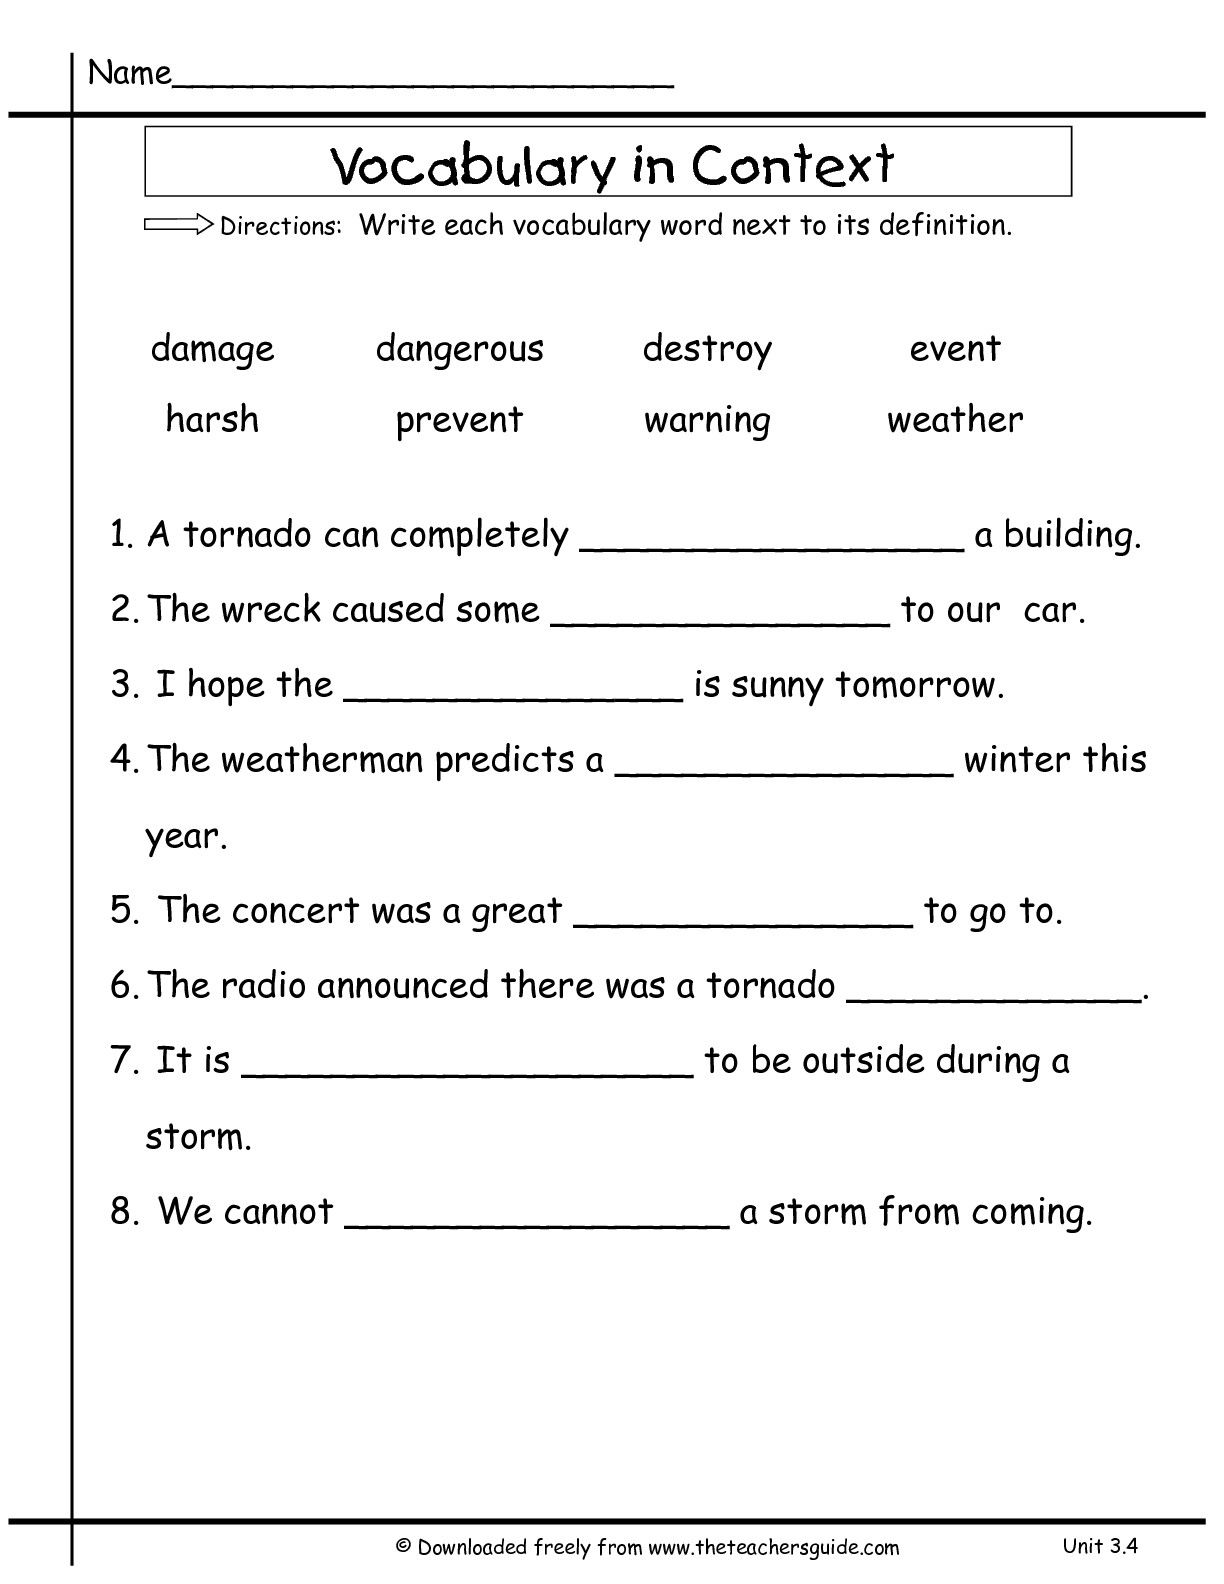 Pin By Amanda Yell On School Stuff 2nd Grade